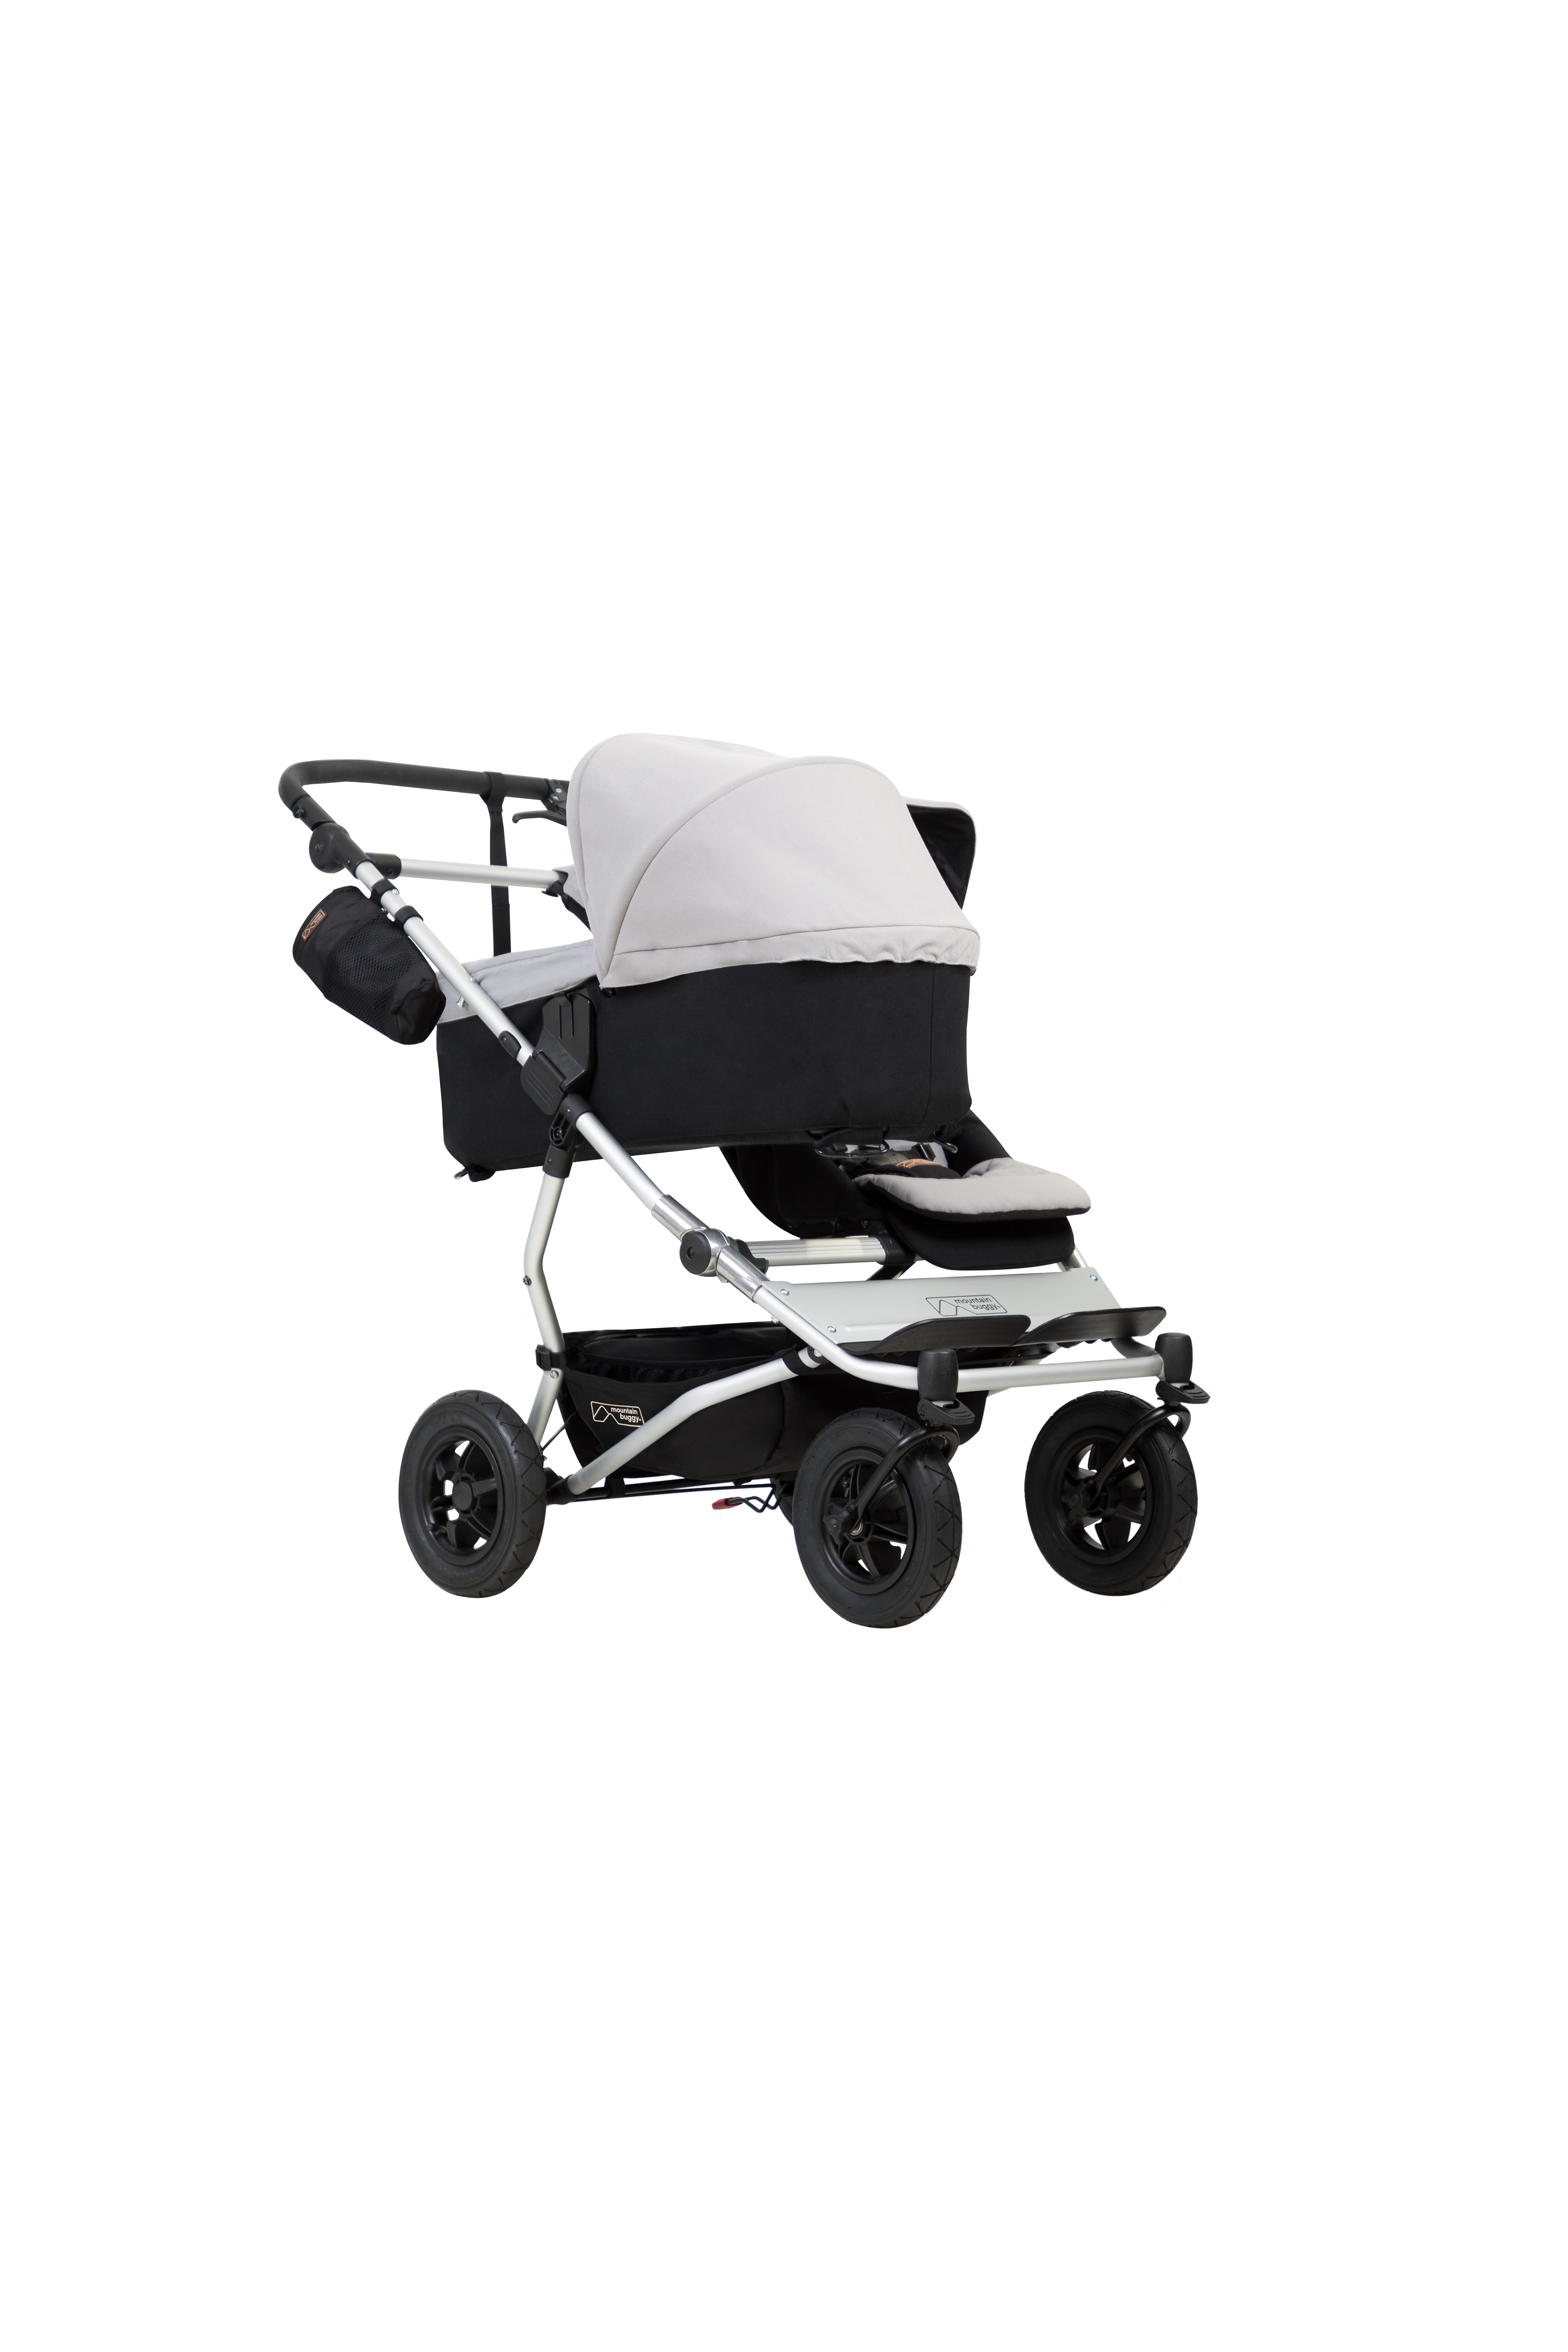 Mountain Buggy Duet Review 9 Months Forever Mountain Buggy Duet Review Mountain